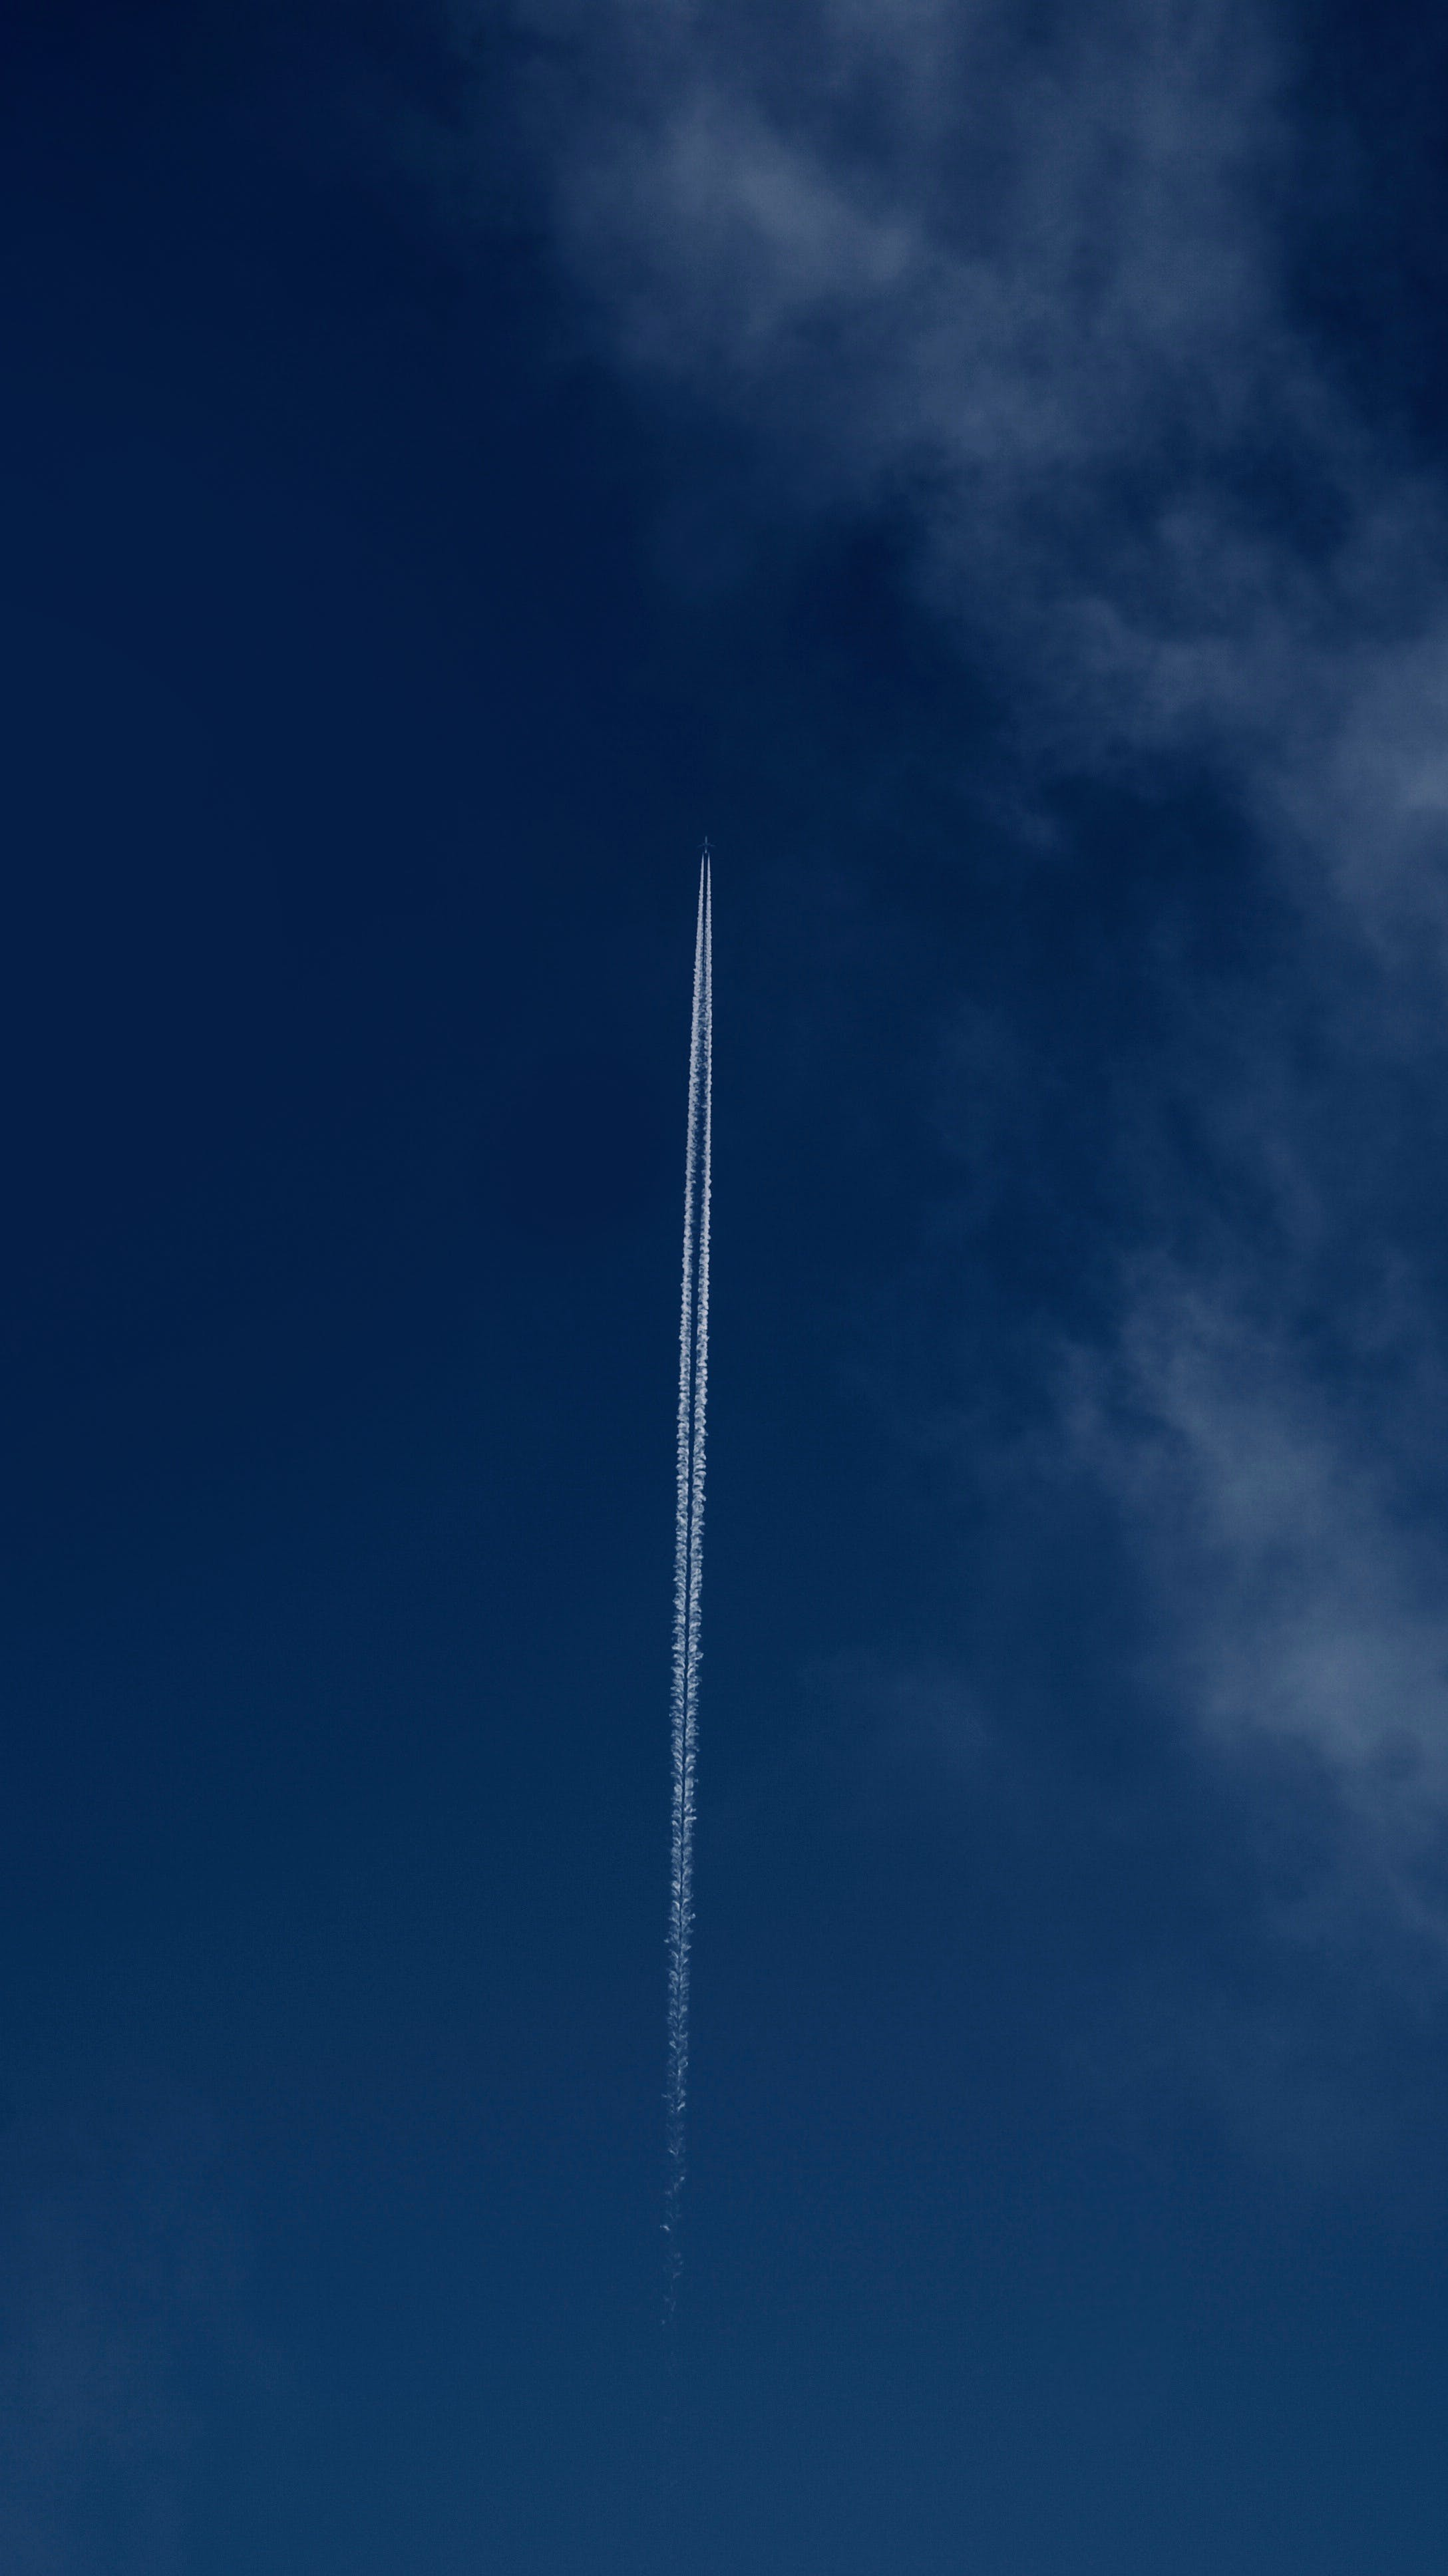 Free stock photo of 1road, airplane, blue, bluesky